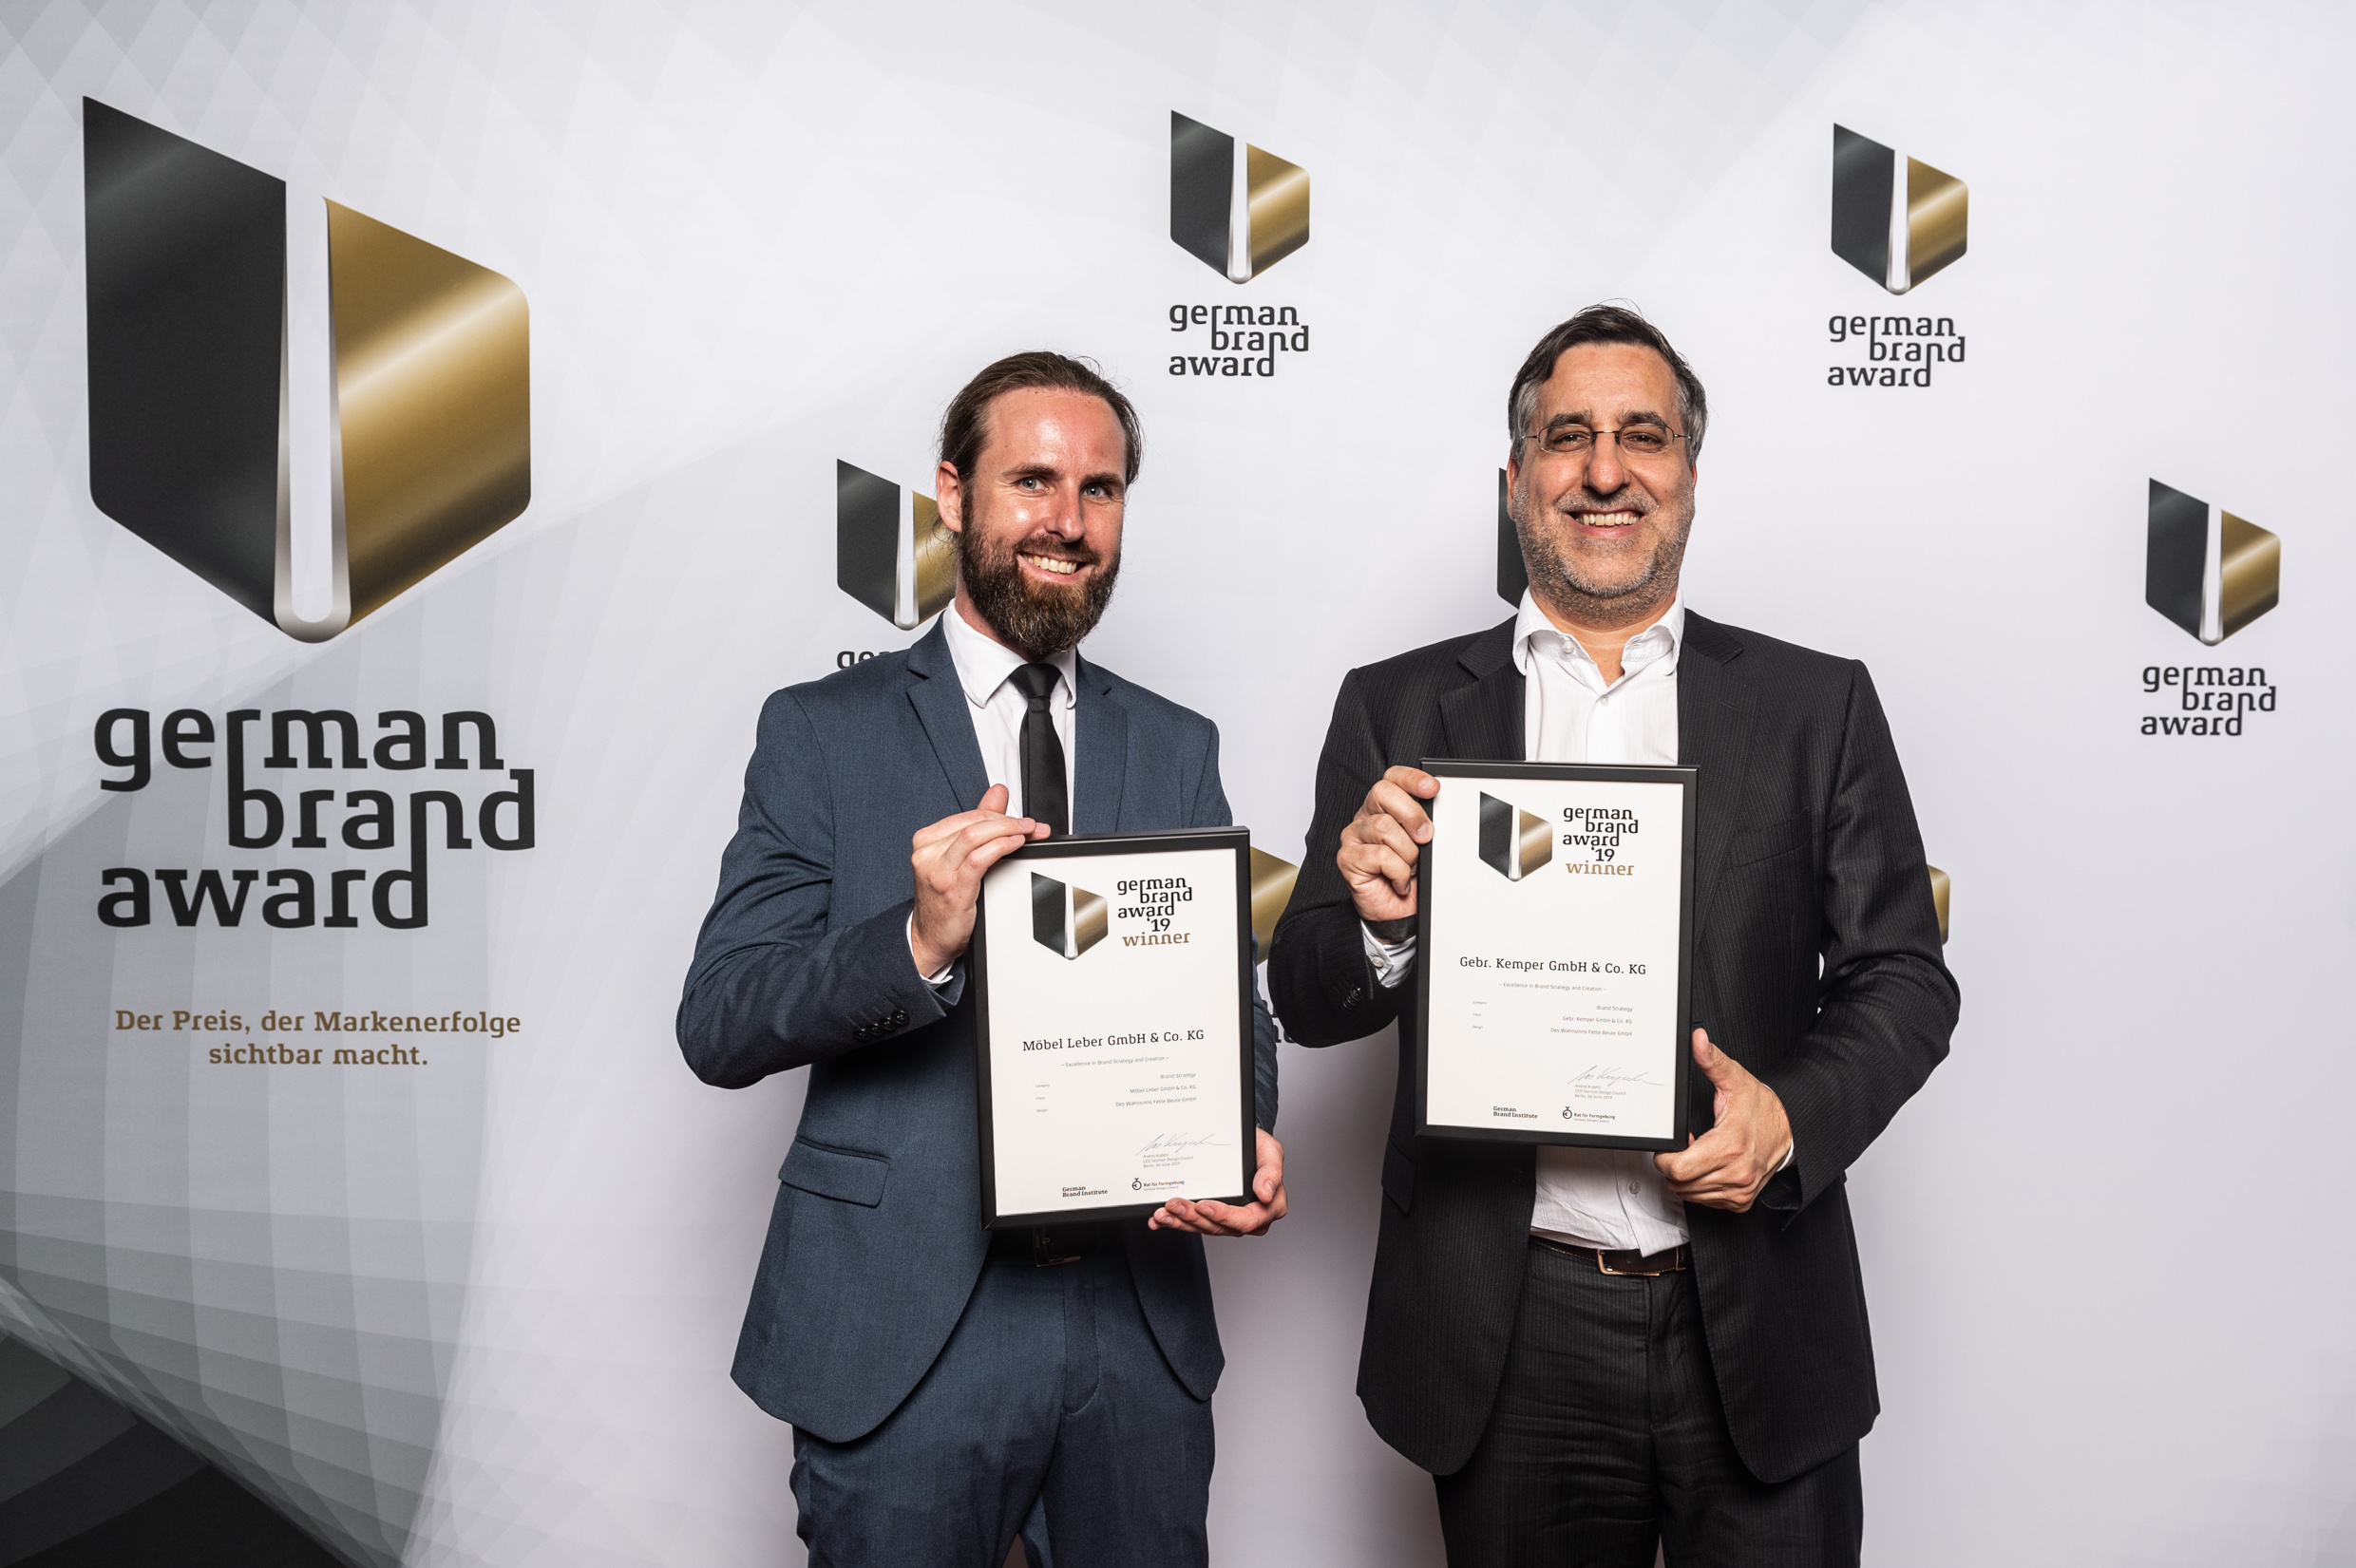 german-brand-award-2019-frank-kaulen-michael-muecher